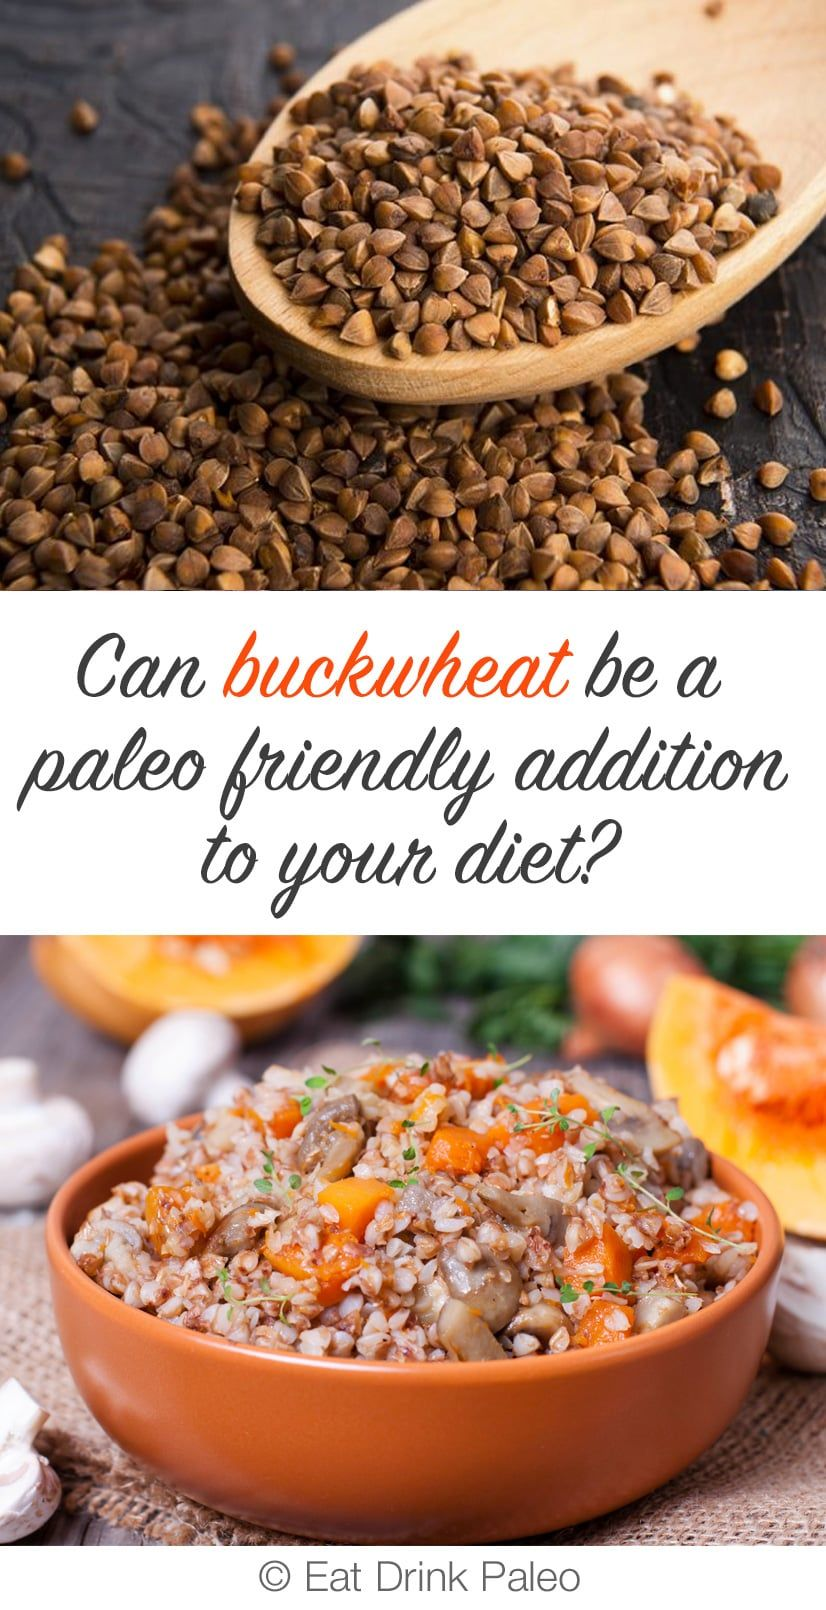 is buckwheat on the paleo diet